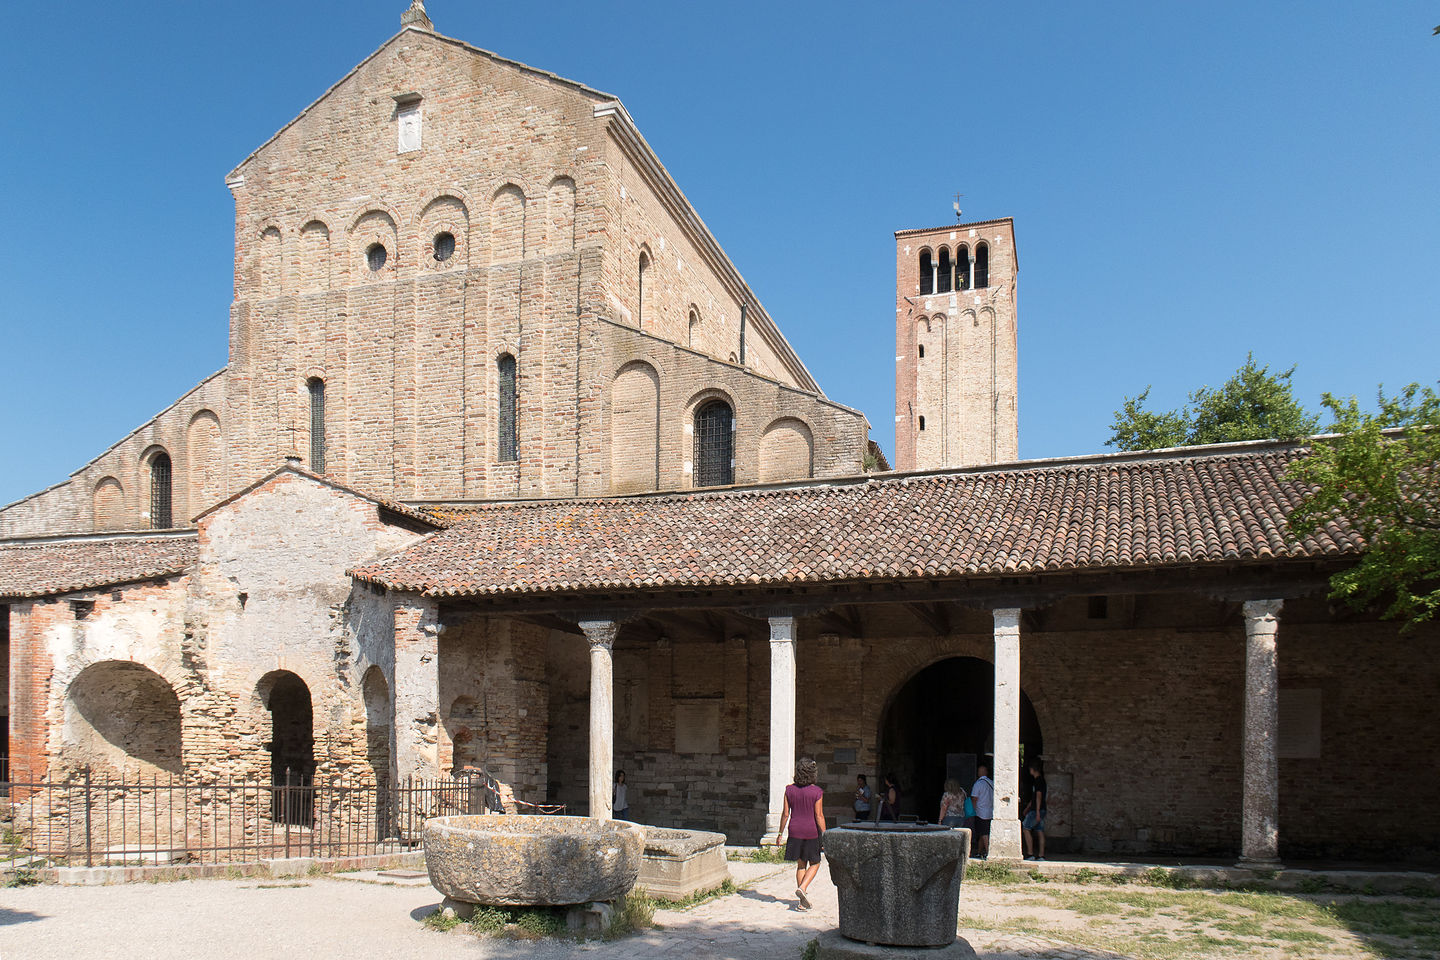 7th century Cathedral of Santa Maria Assunta